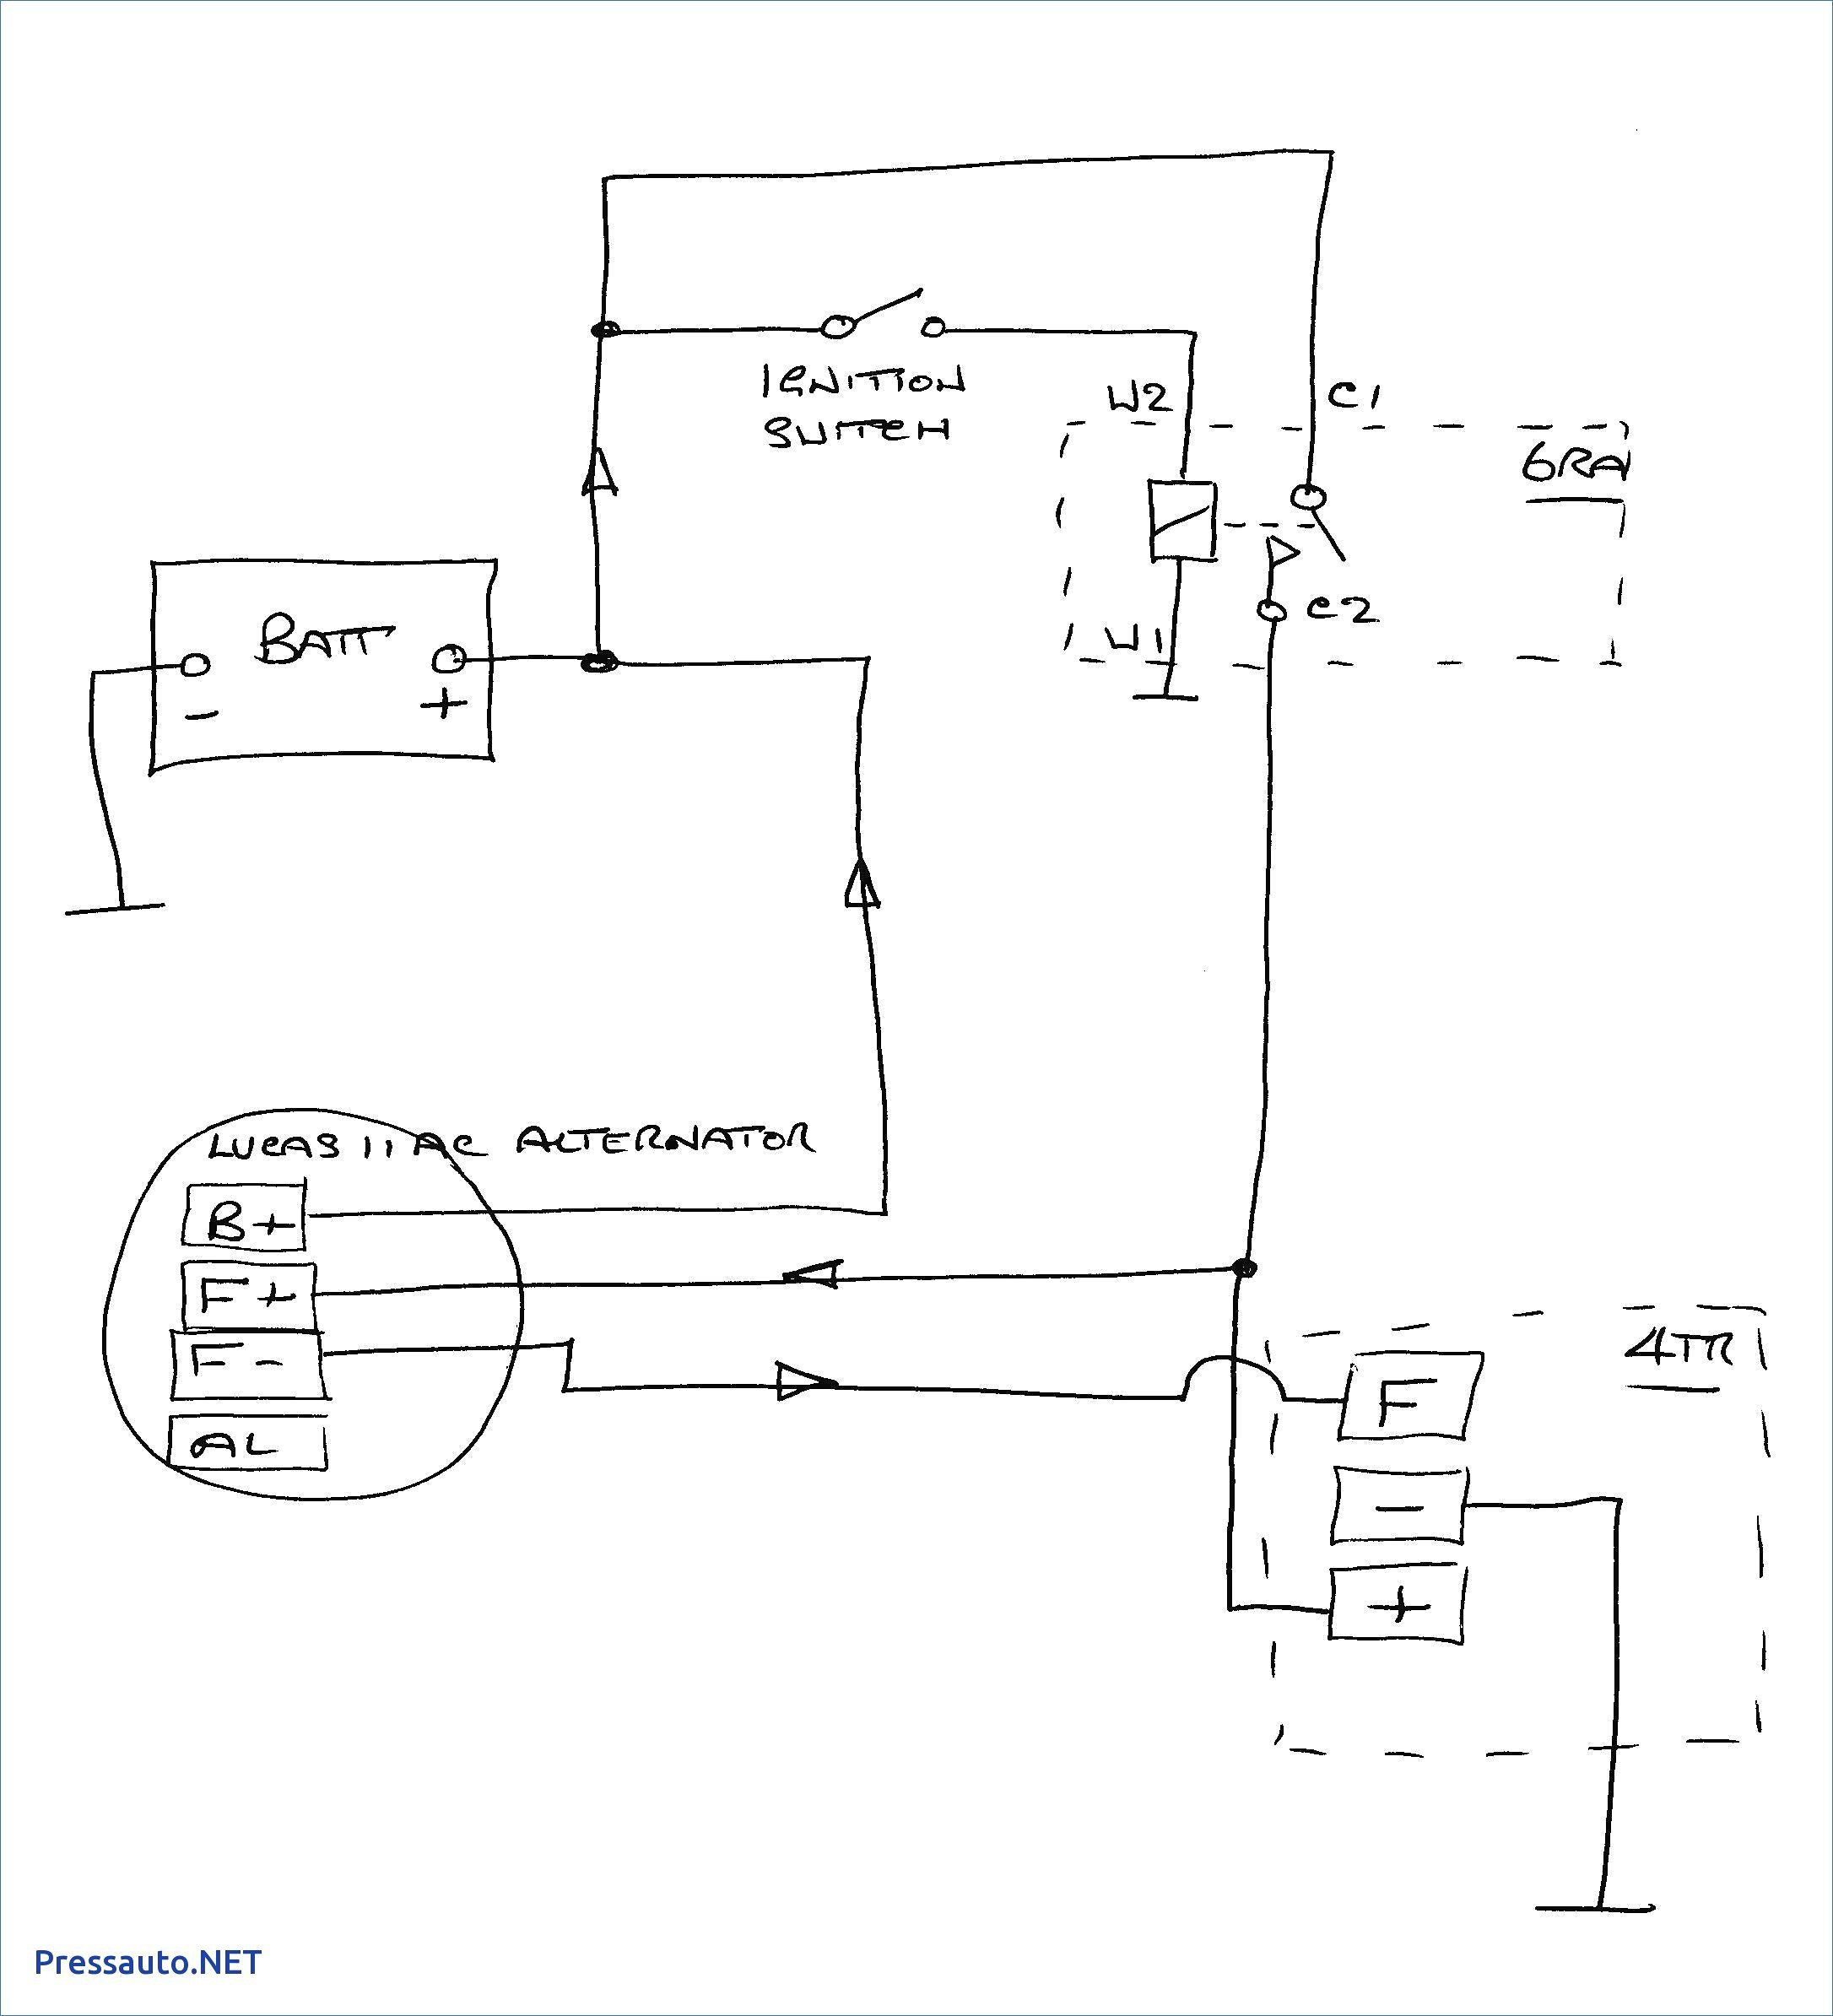 Gm 3 Wire Alternator Wiring Diagram | Wiring Diagram - Gm 3 Wire Alternator Wiring Diagram